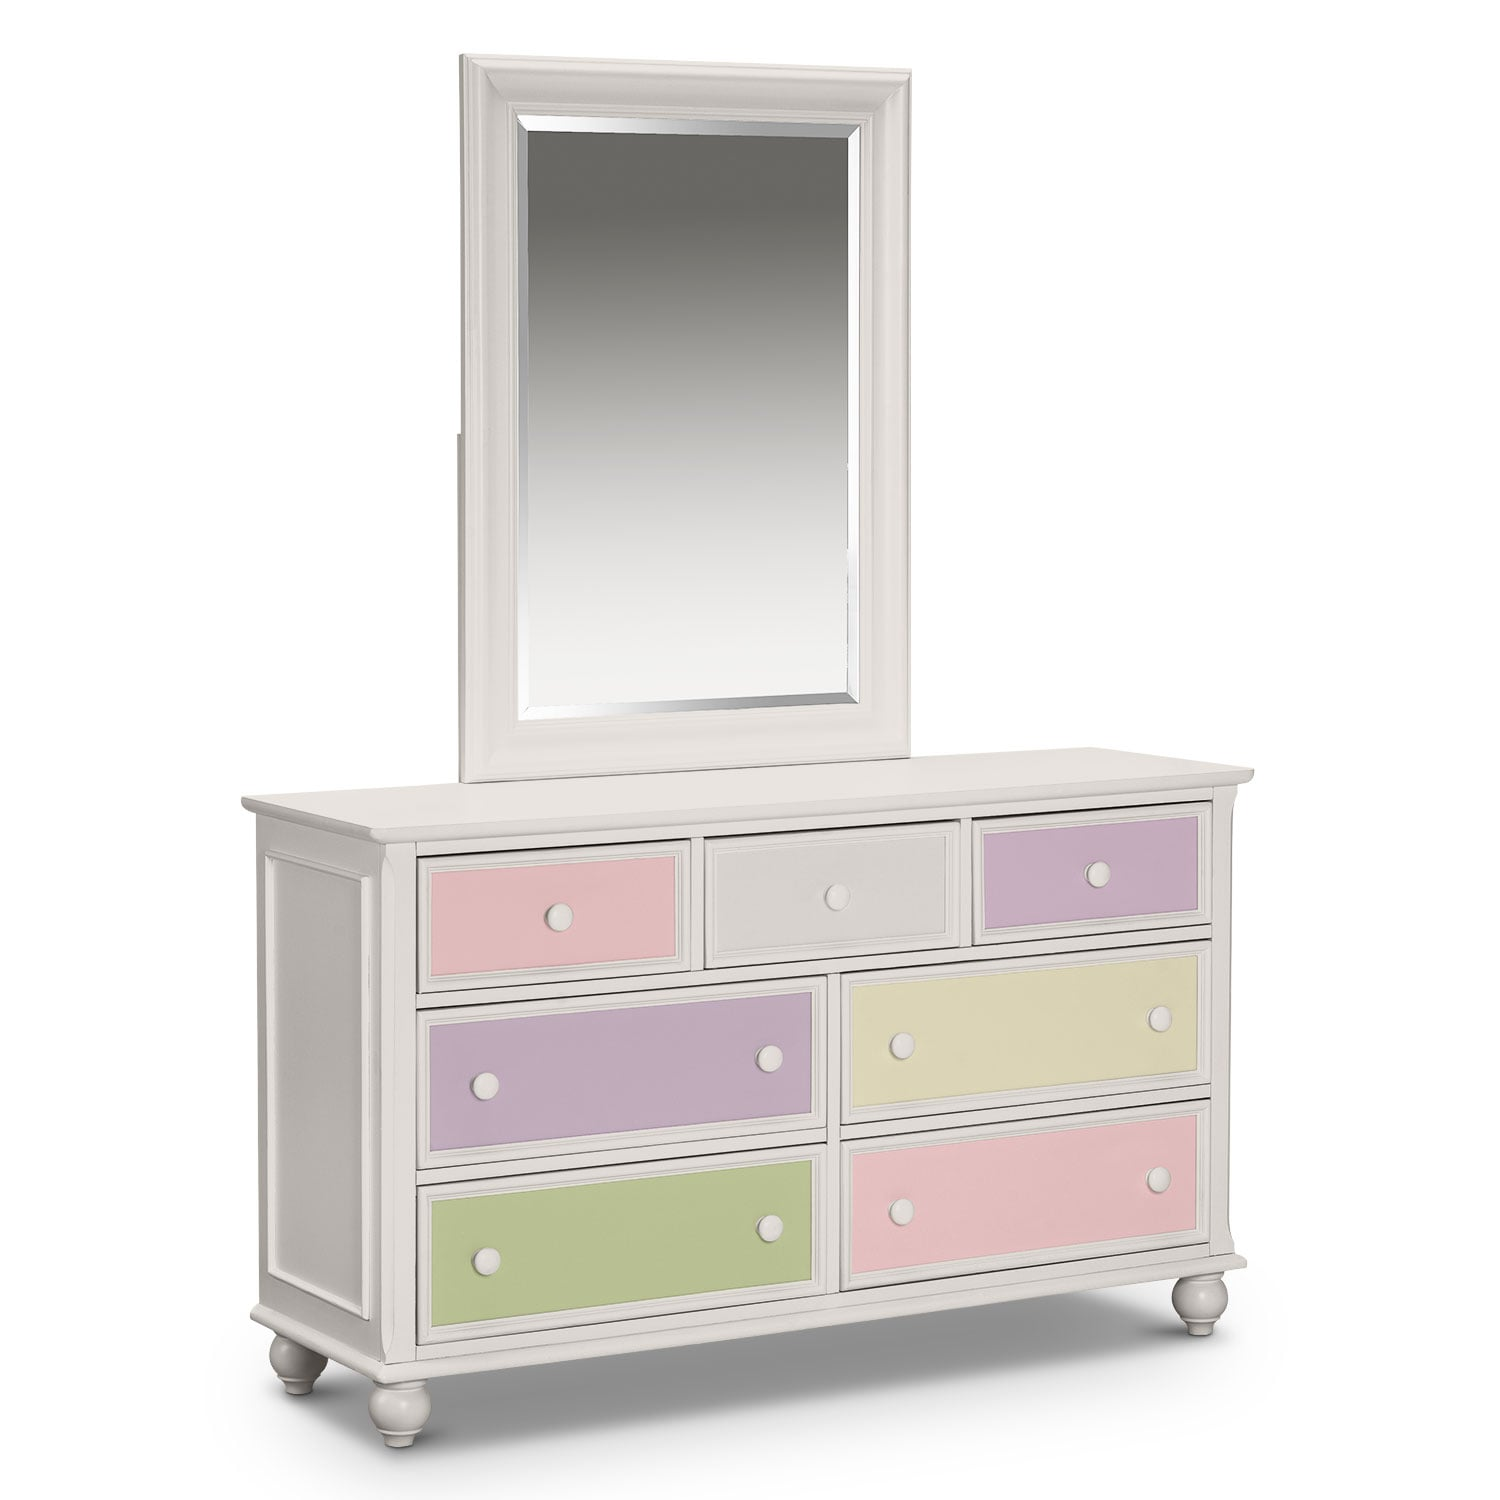 Kids Furniture - Colorworks Dresser and Mirror - White